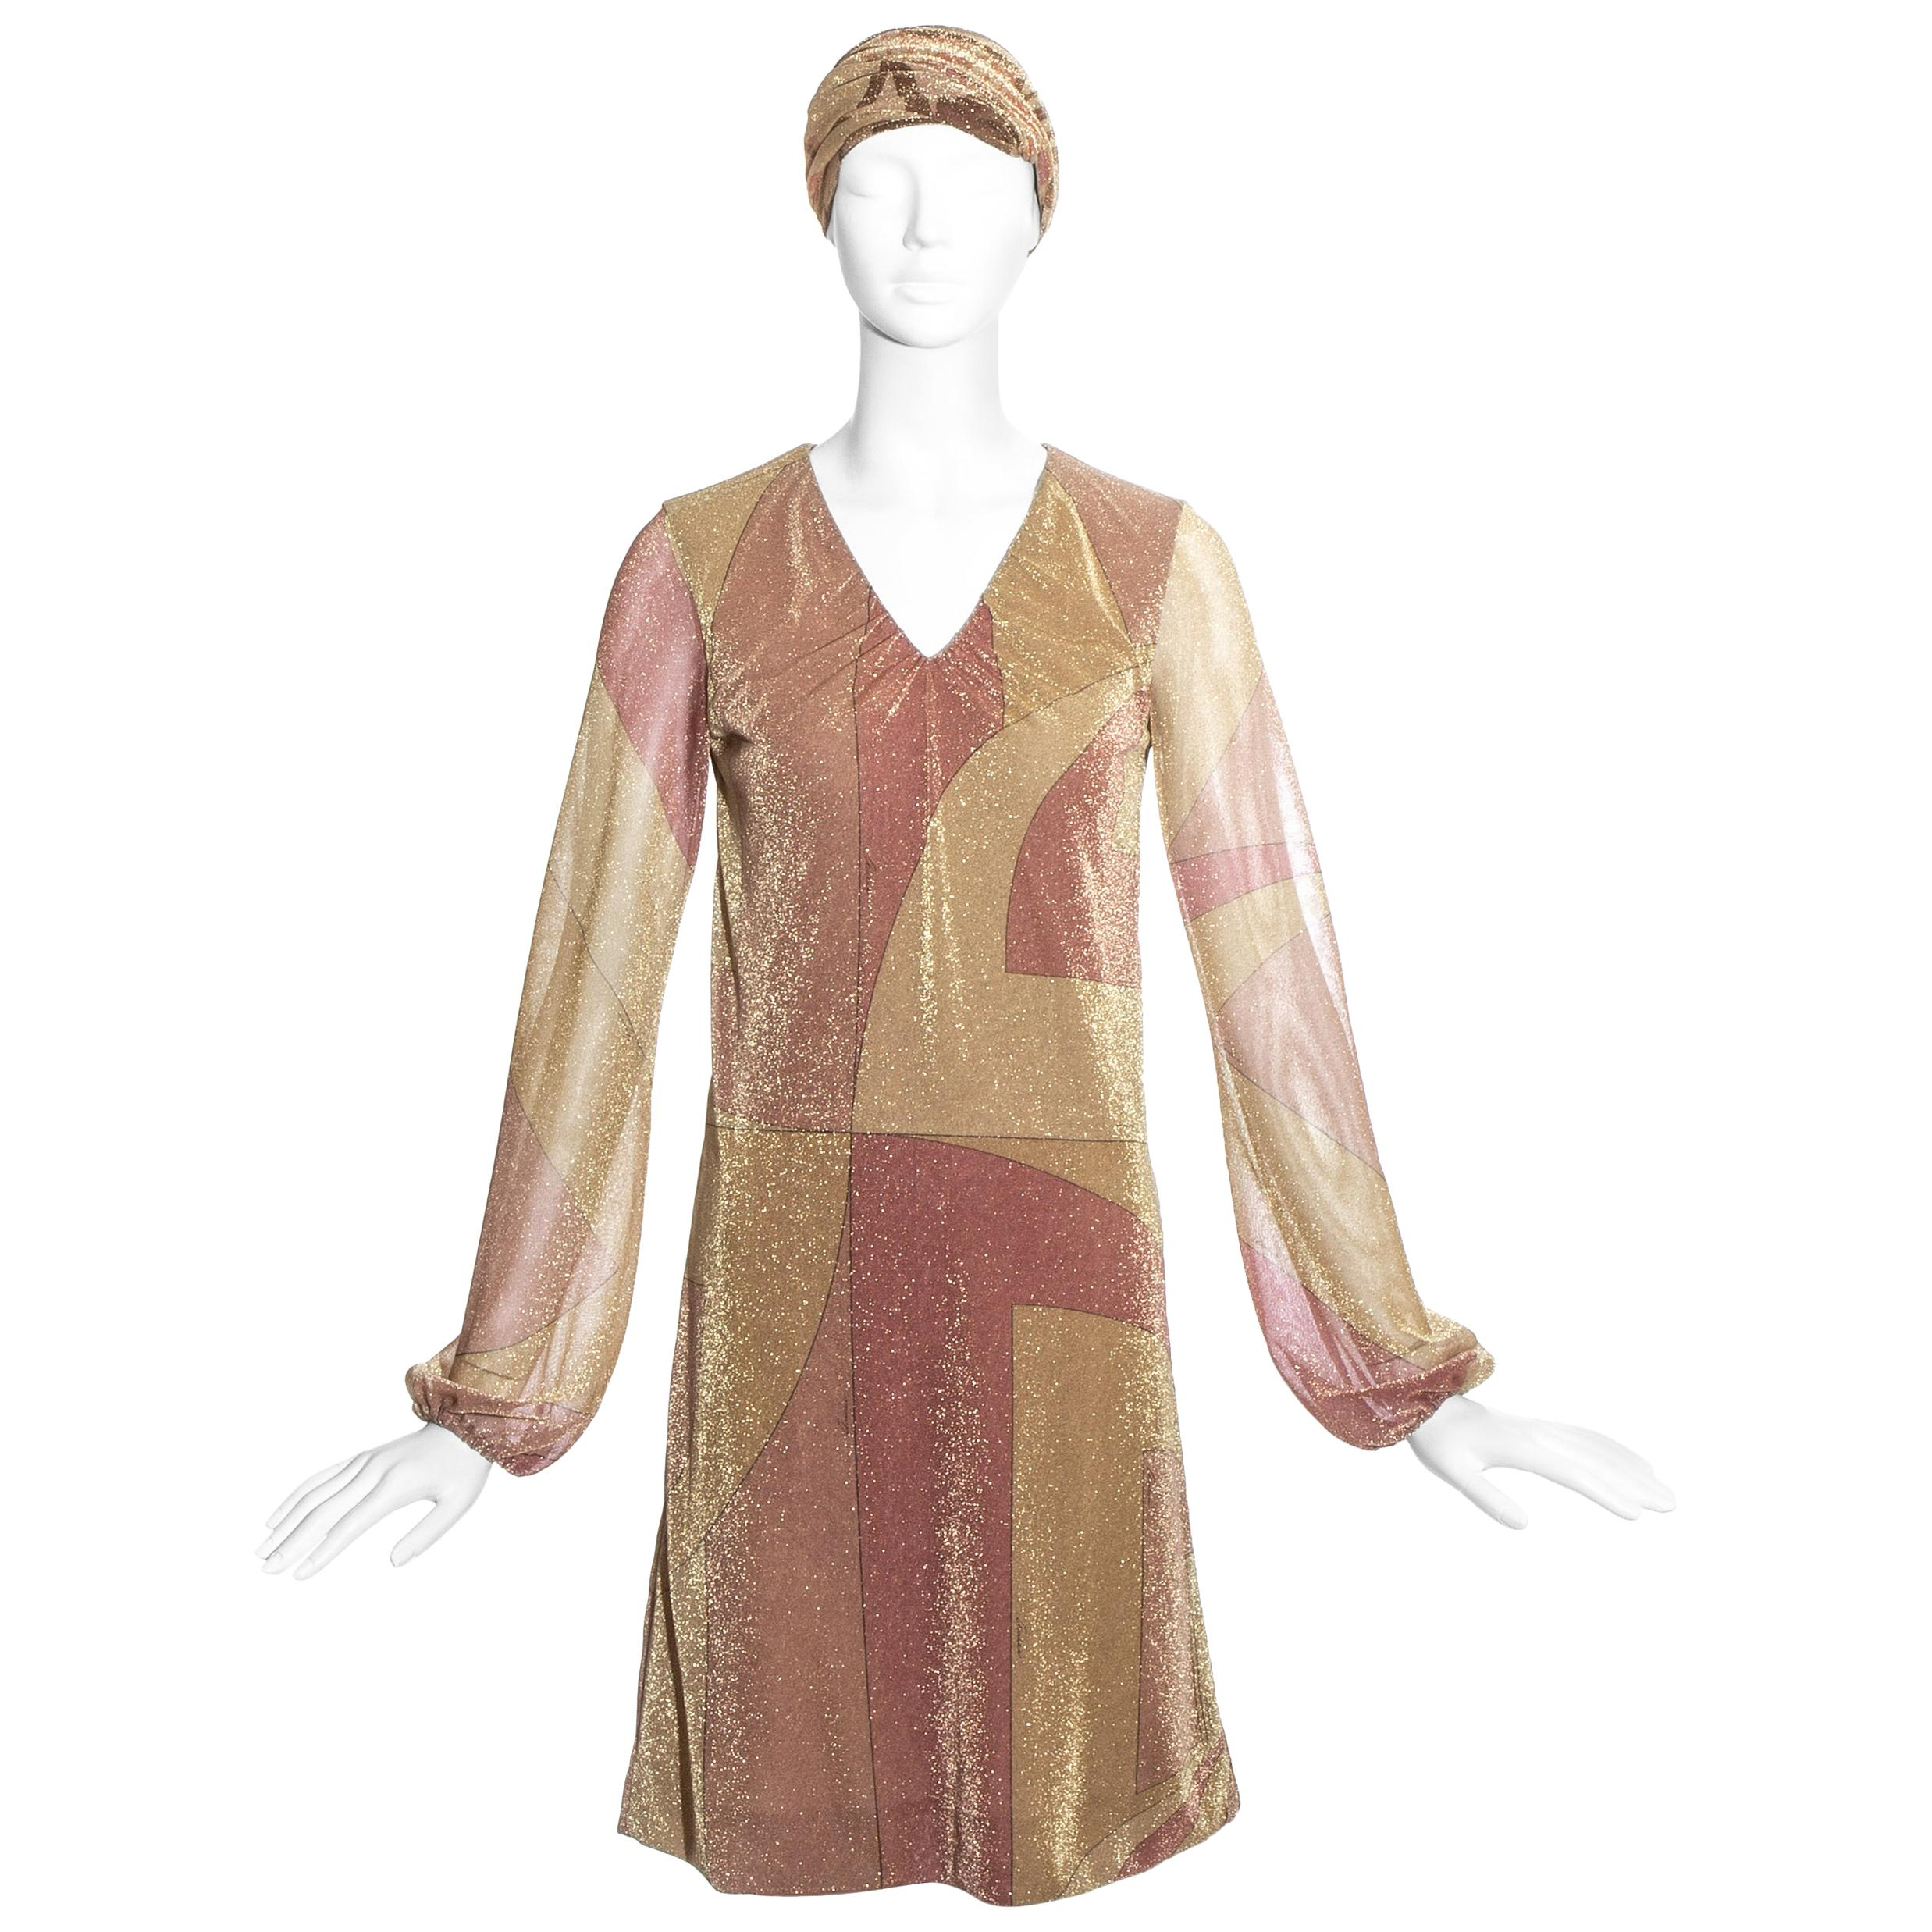 Gucci by Tom Ford pink and gold printed lurex dress with head scarf, fw 2000